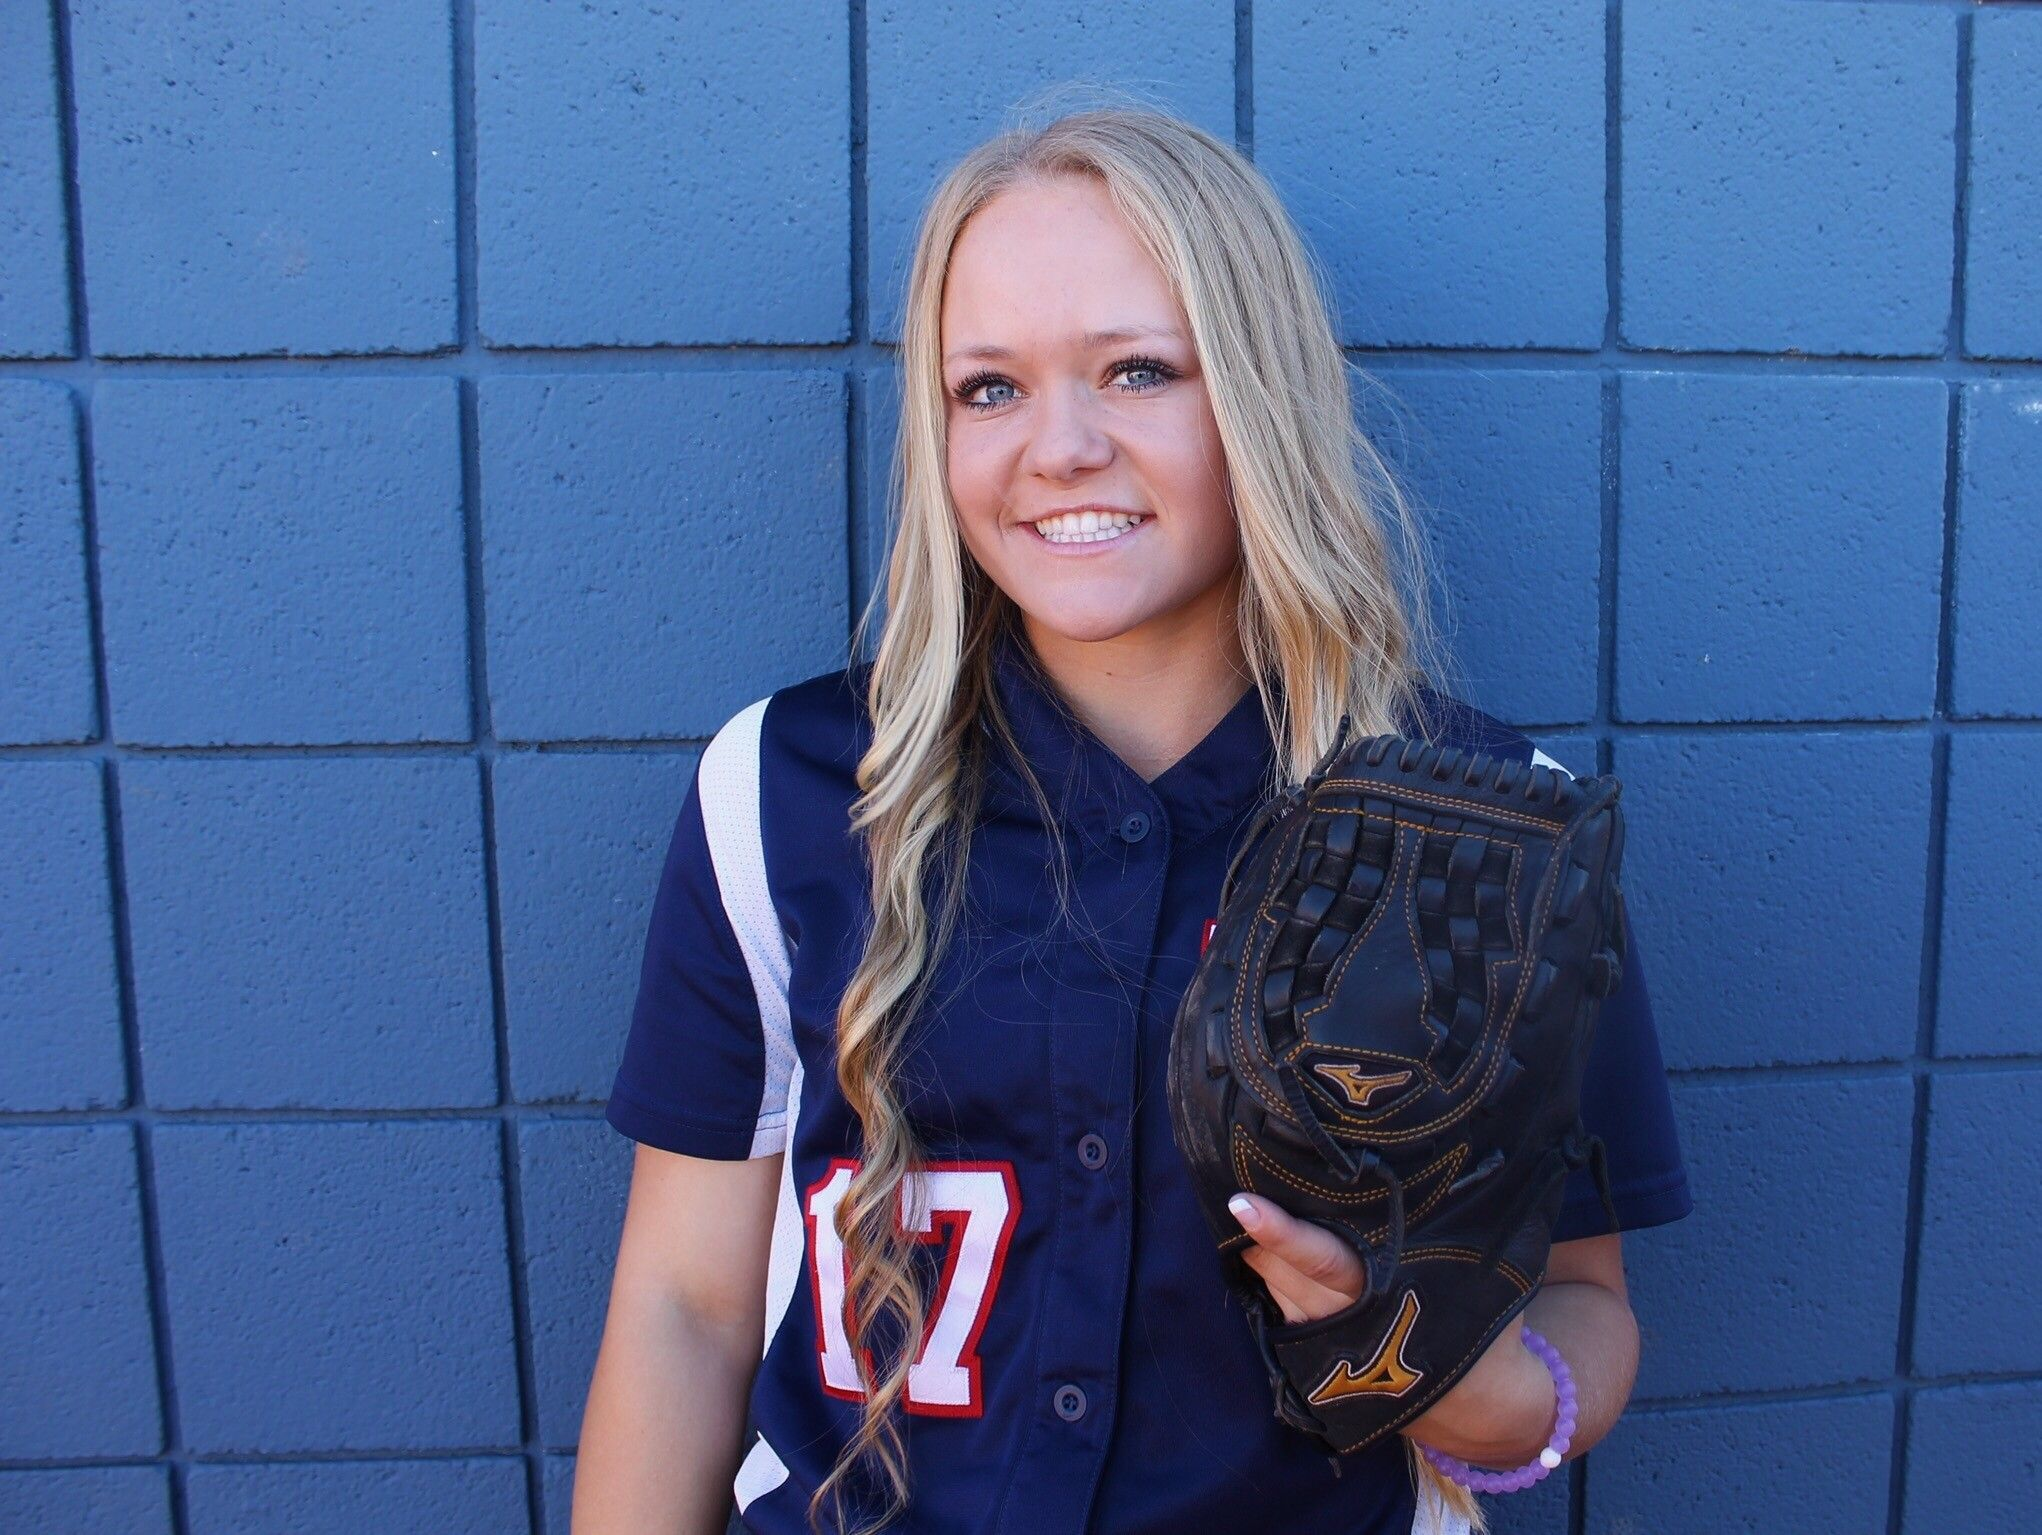 Marissa Schuld, from Phoenix Pinnacle, is the azcentral.com Sports Awards Female Athlete of the Week, presented by La-Z-Boy Furniture Galleries, for Mar. 23-30.